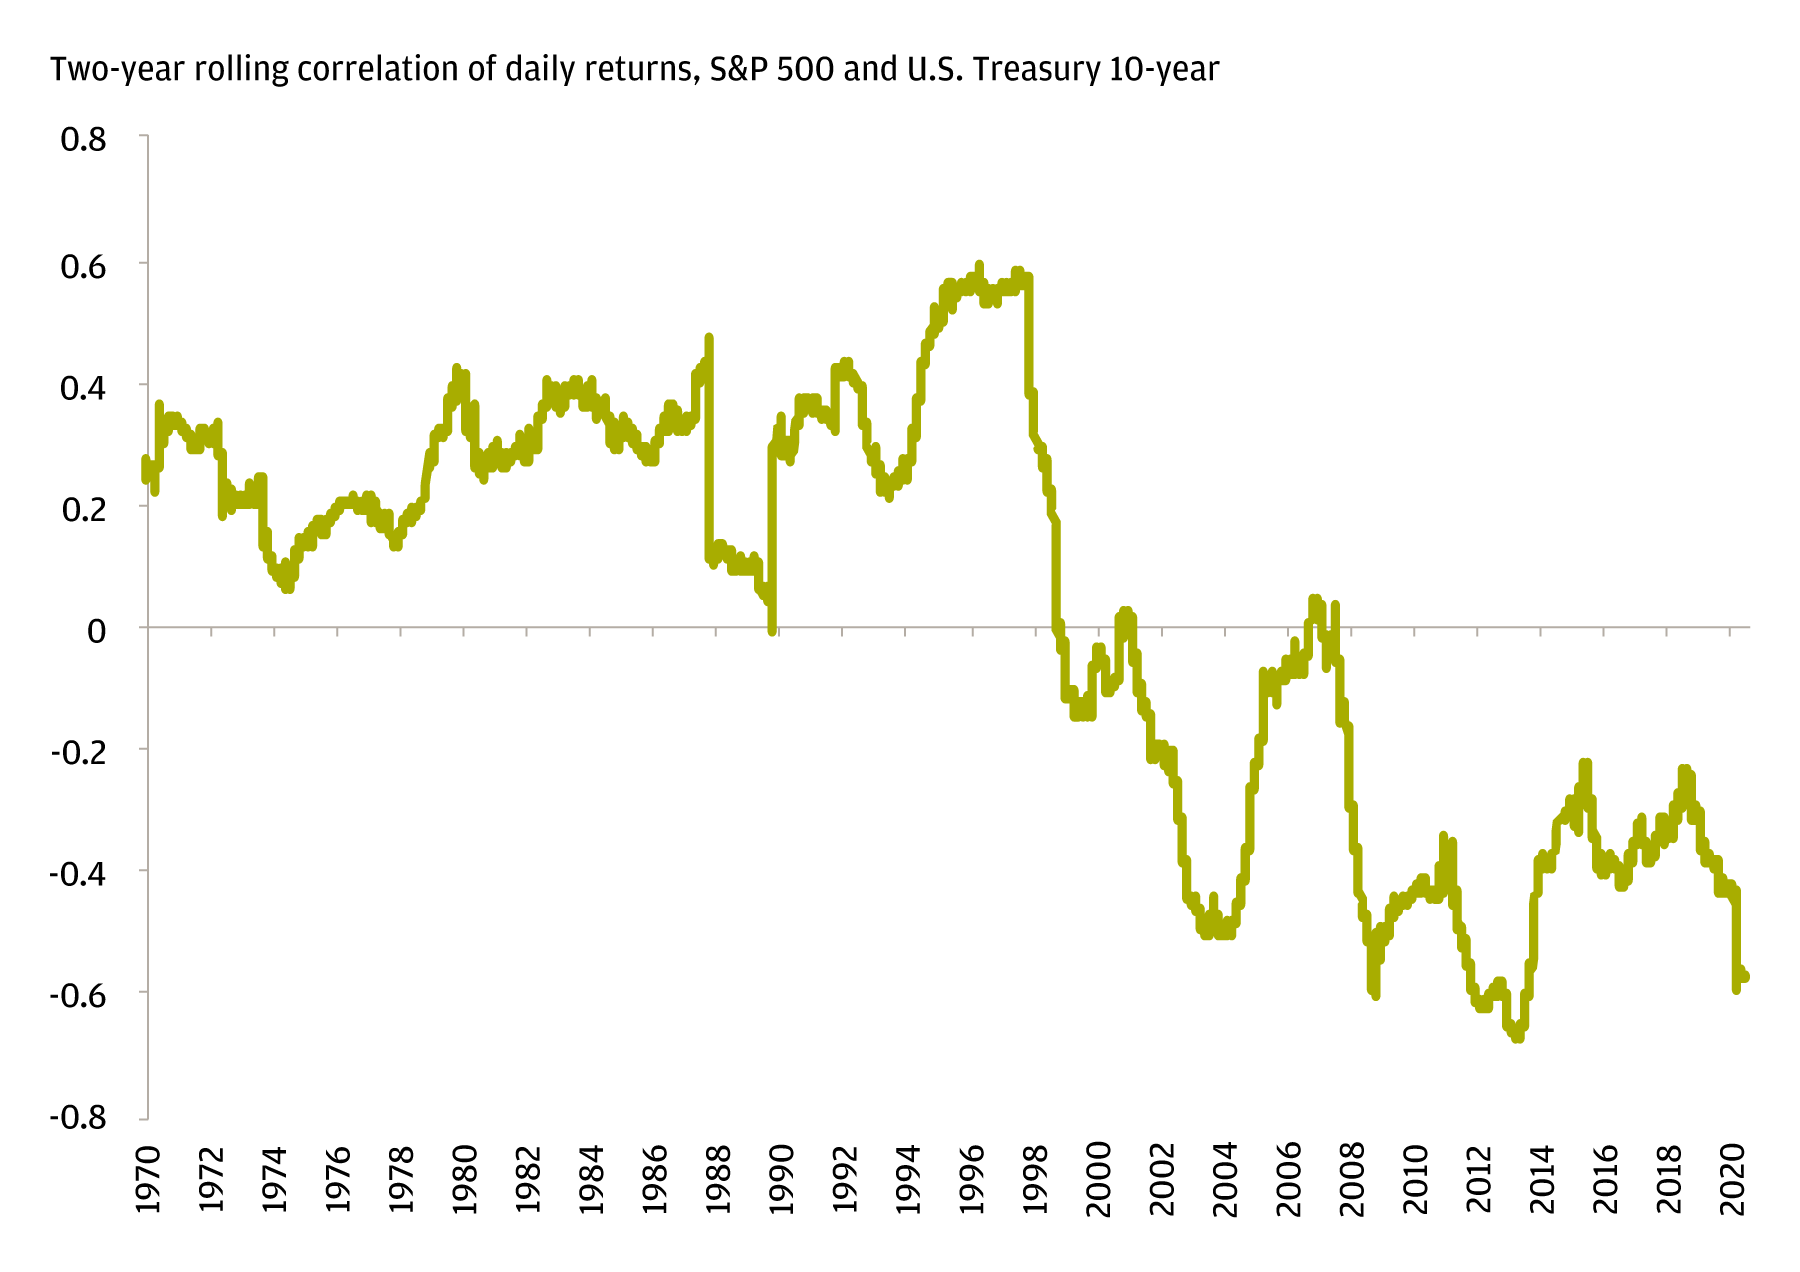 Line chart shows two-year rolling correlation of daily returns for the S&P 500 and the U.S. Treasury 10-year, from 1970 to 2020. The chart highlights that from 1970 to 1998, correlation was above zero, but since then, correlation has dropped below zero (i.e., an inverse relationship).